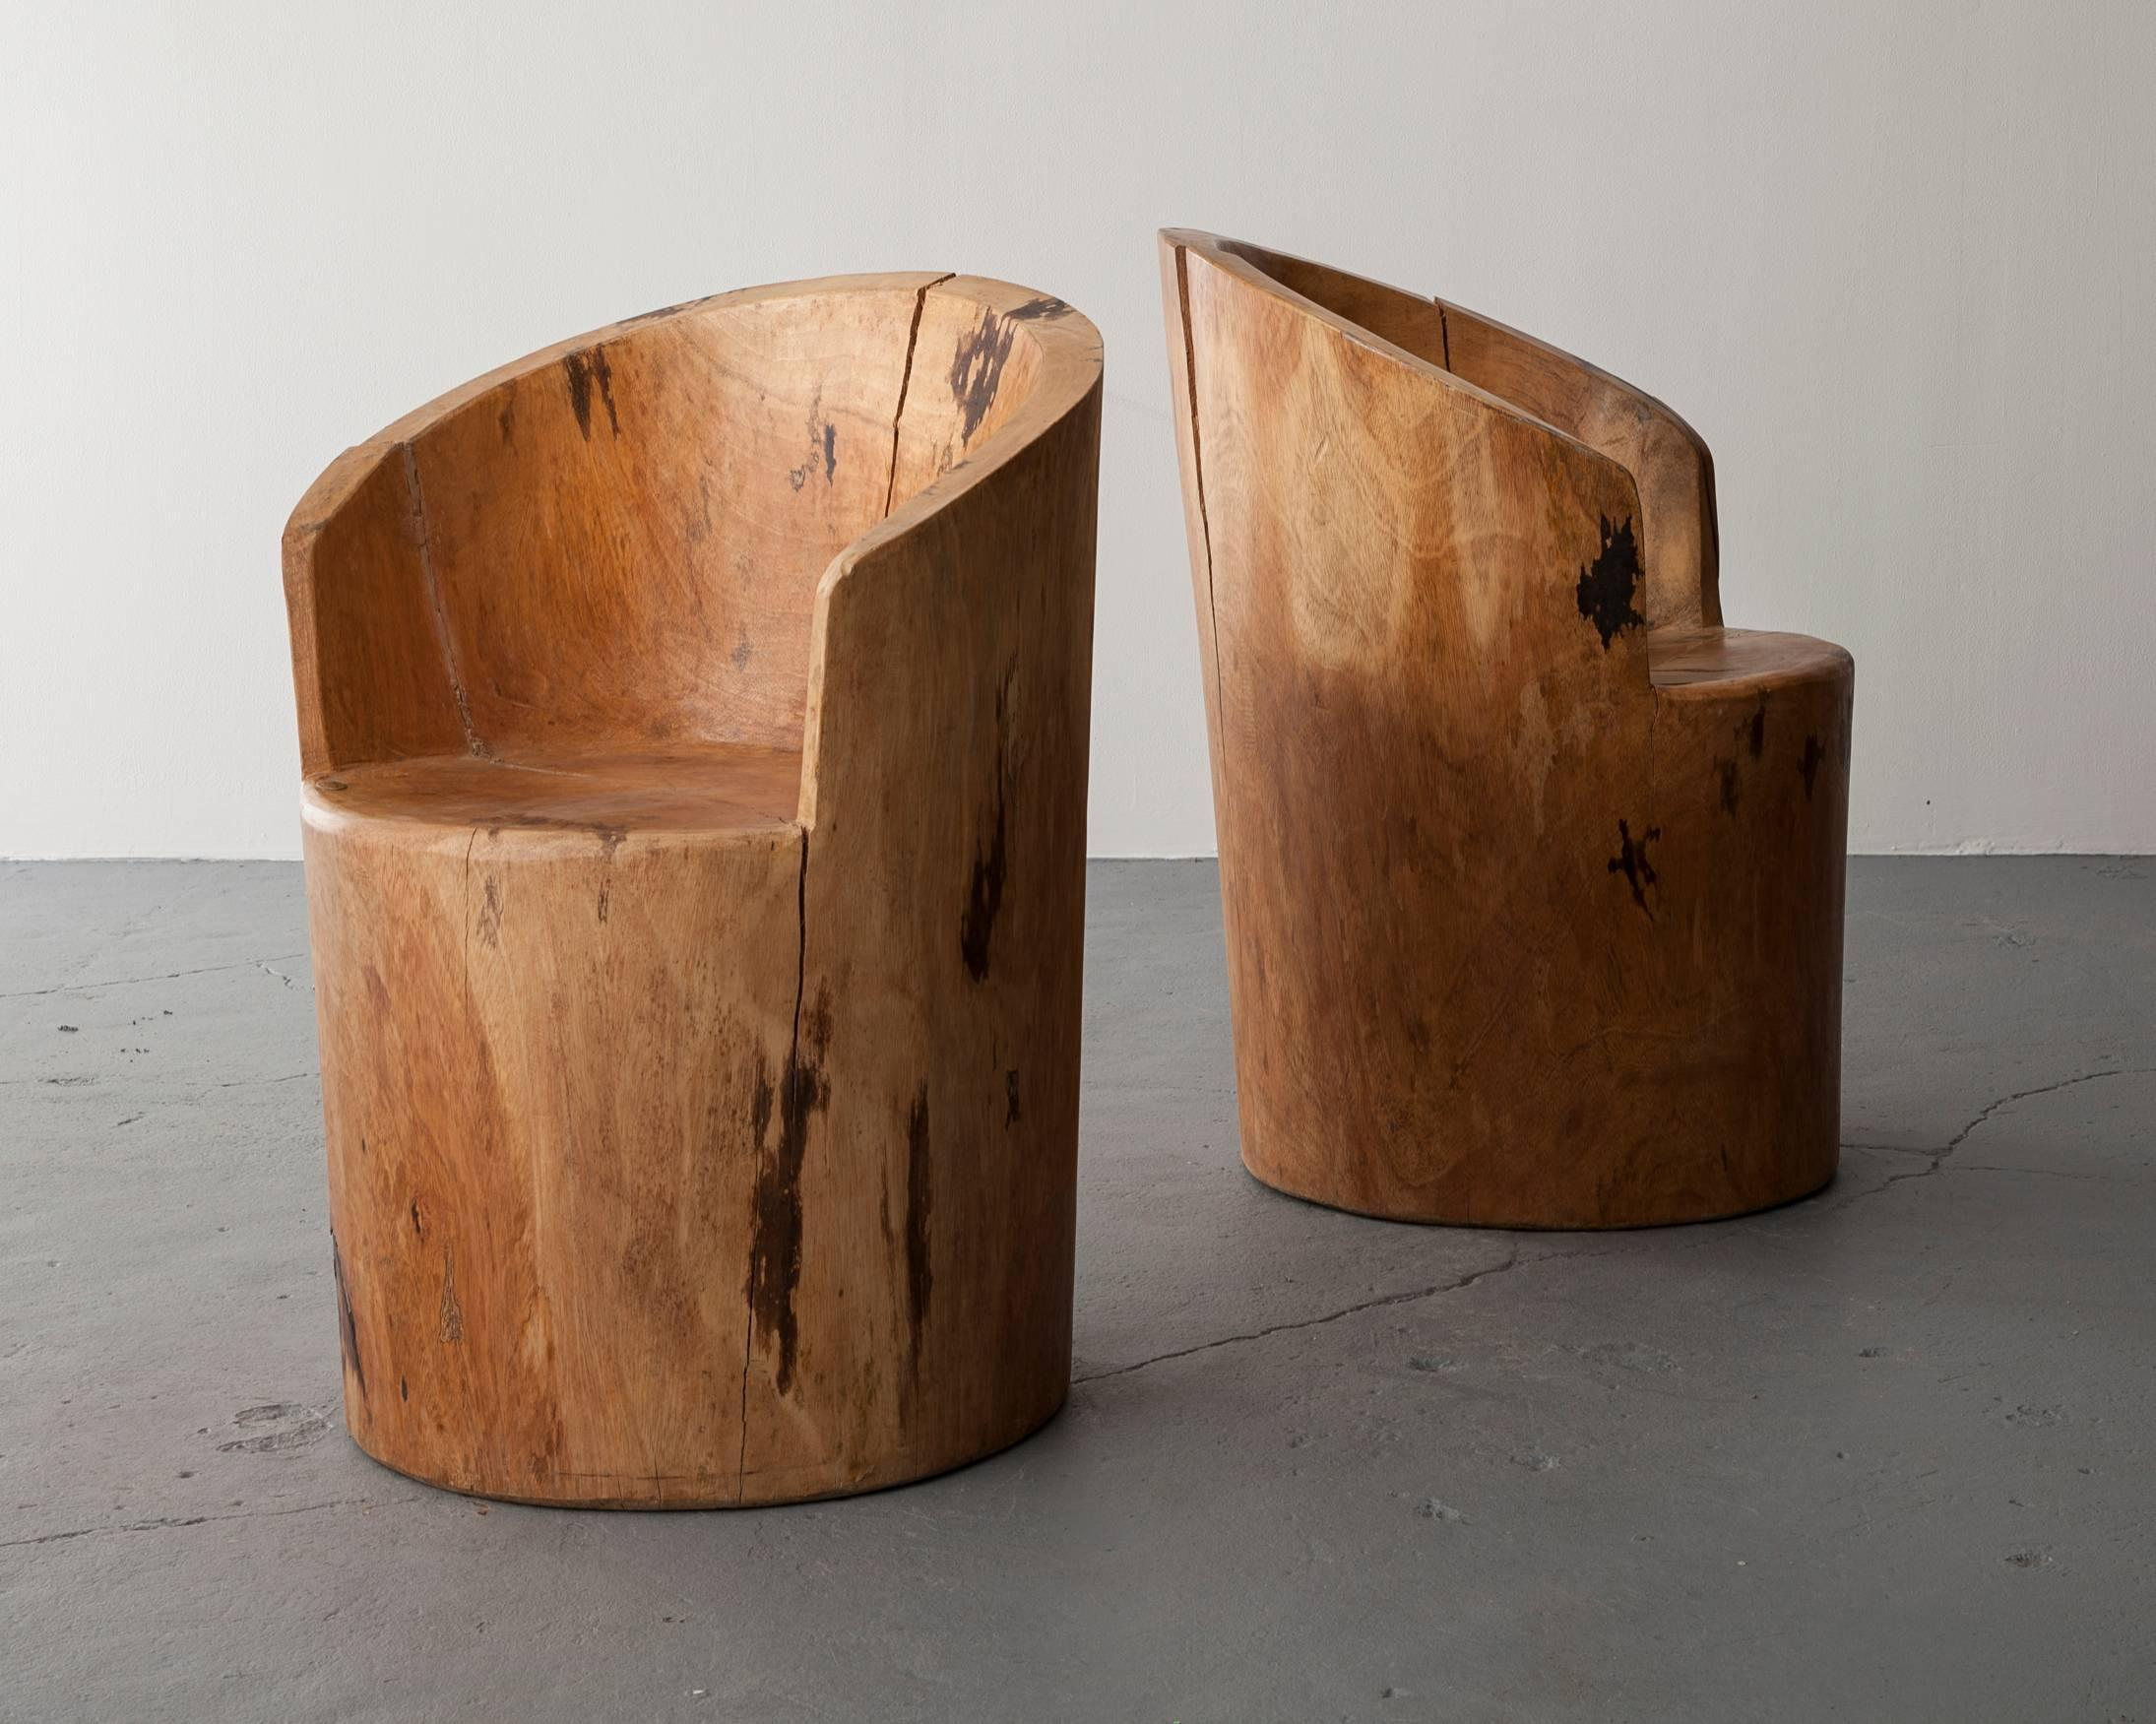 Sculpted Solid Wood Chair For Sale at 1stdibs